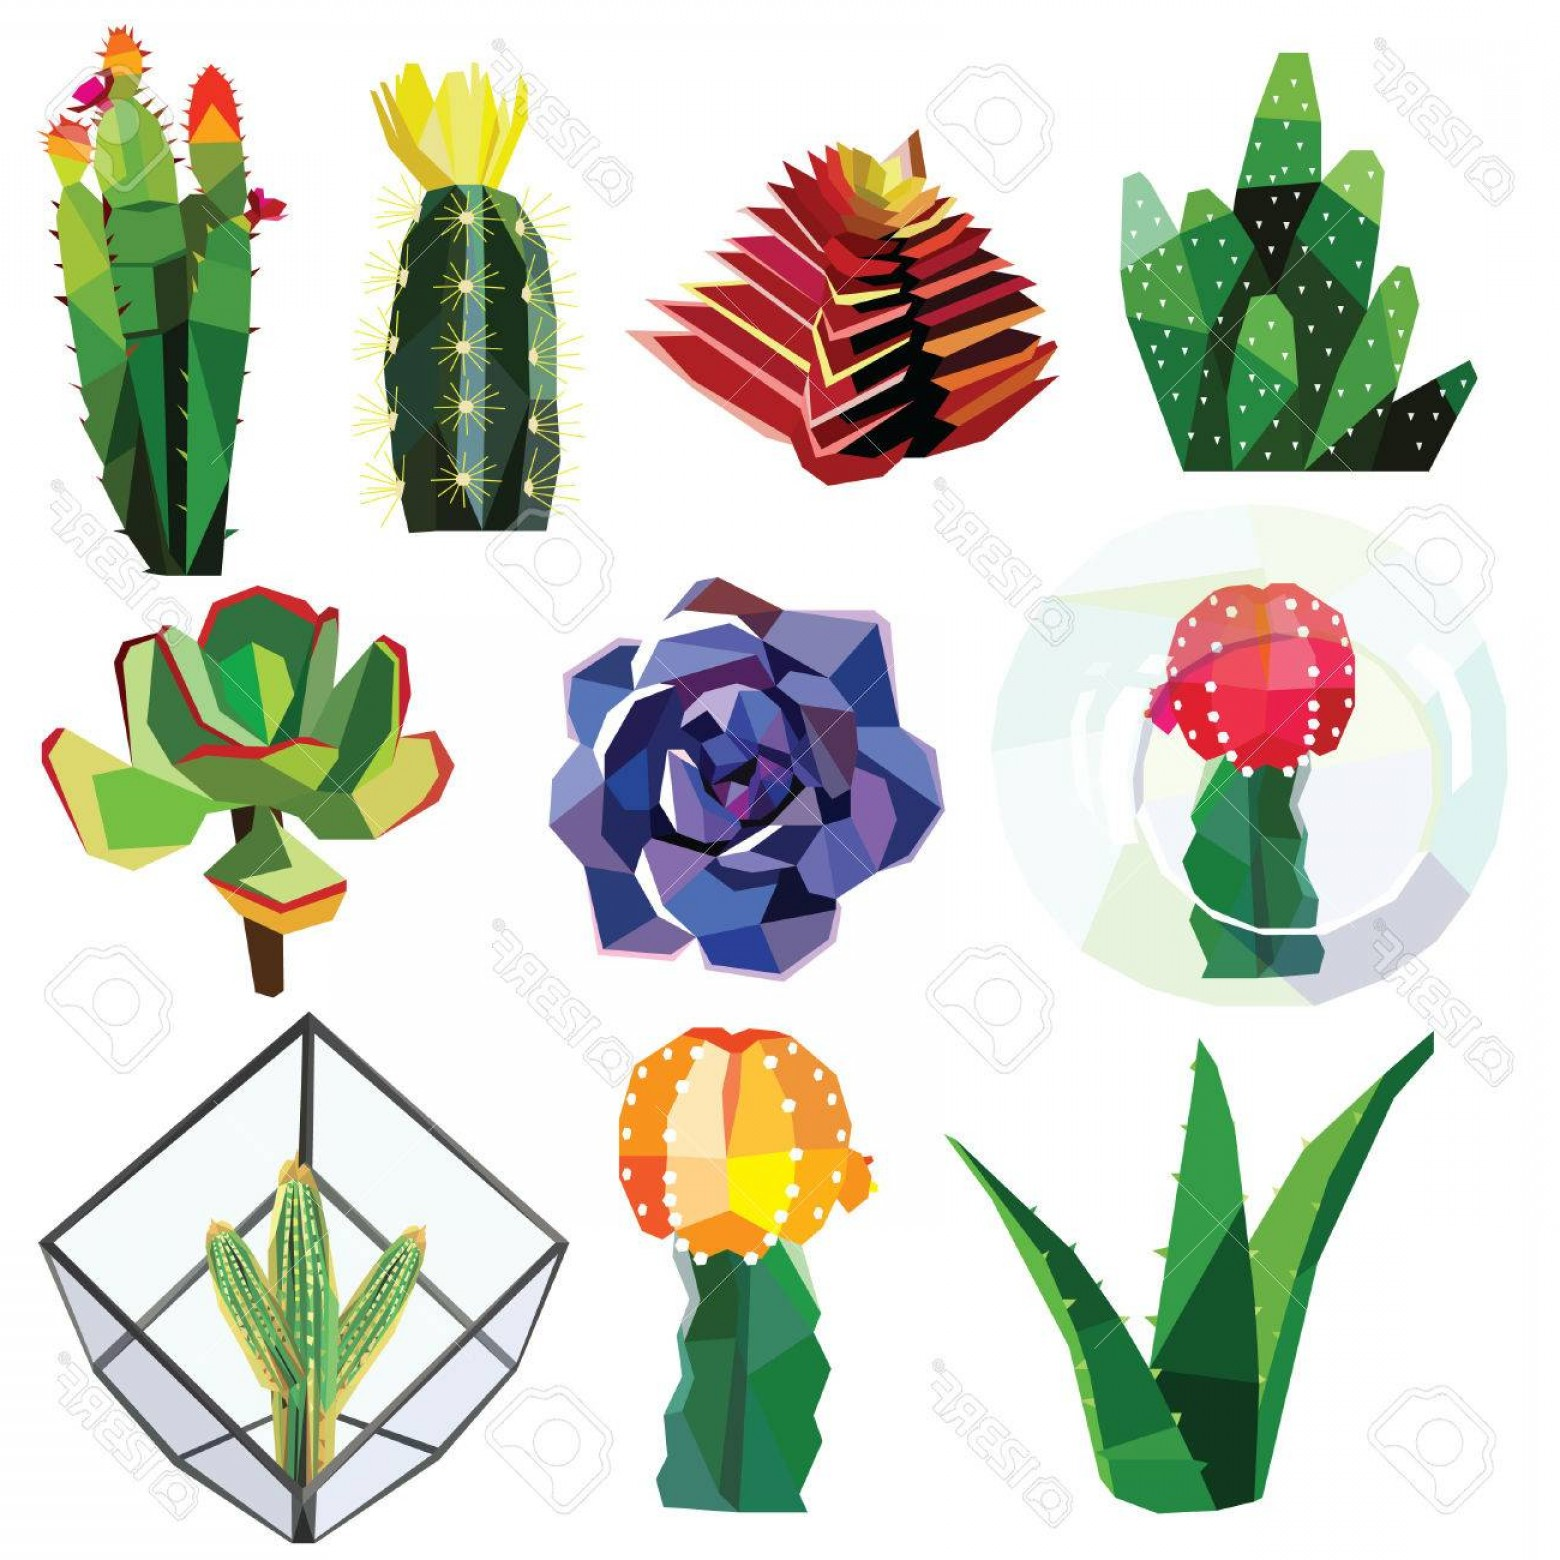 Cactus And Flower Vector: Photostock Vector Succulent Cactus Flower Low Poly Colorful Set With Glass Geometric Terrariums Vector Illustration Is